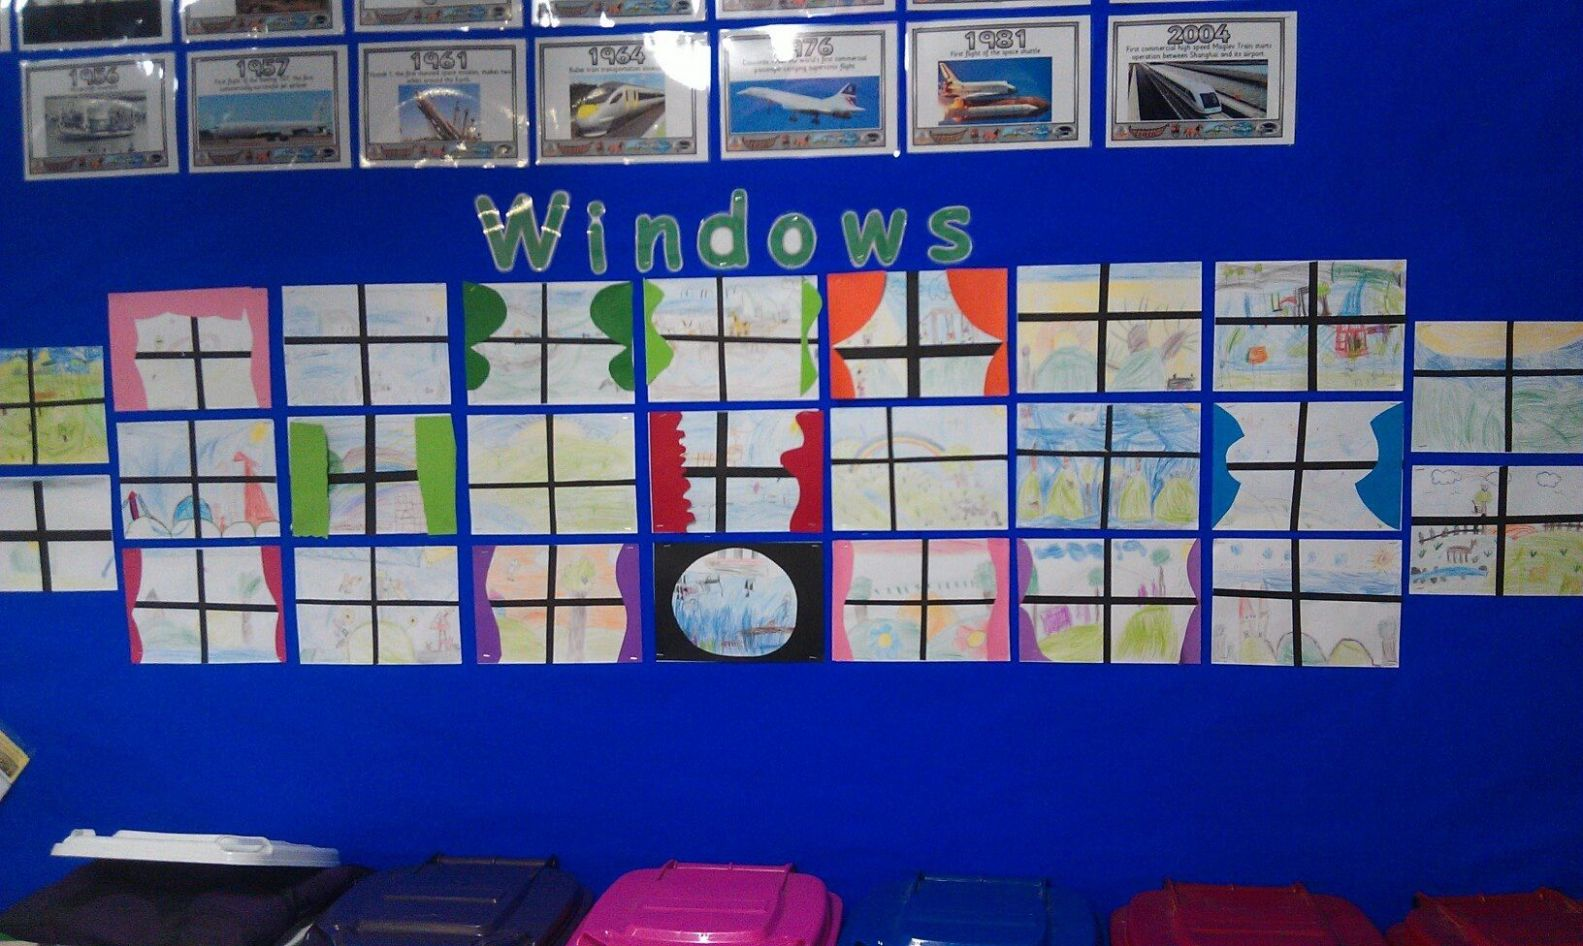 Windows art inspired by Jeannie Baker book Window | Homeschool art ...